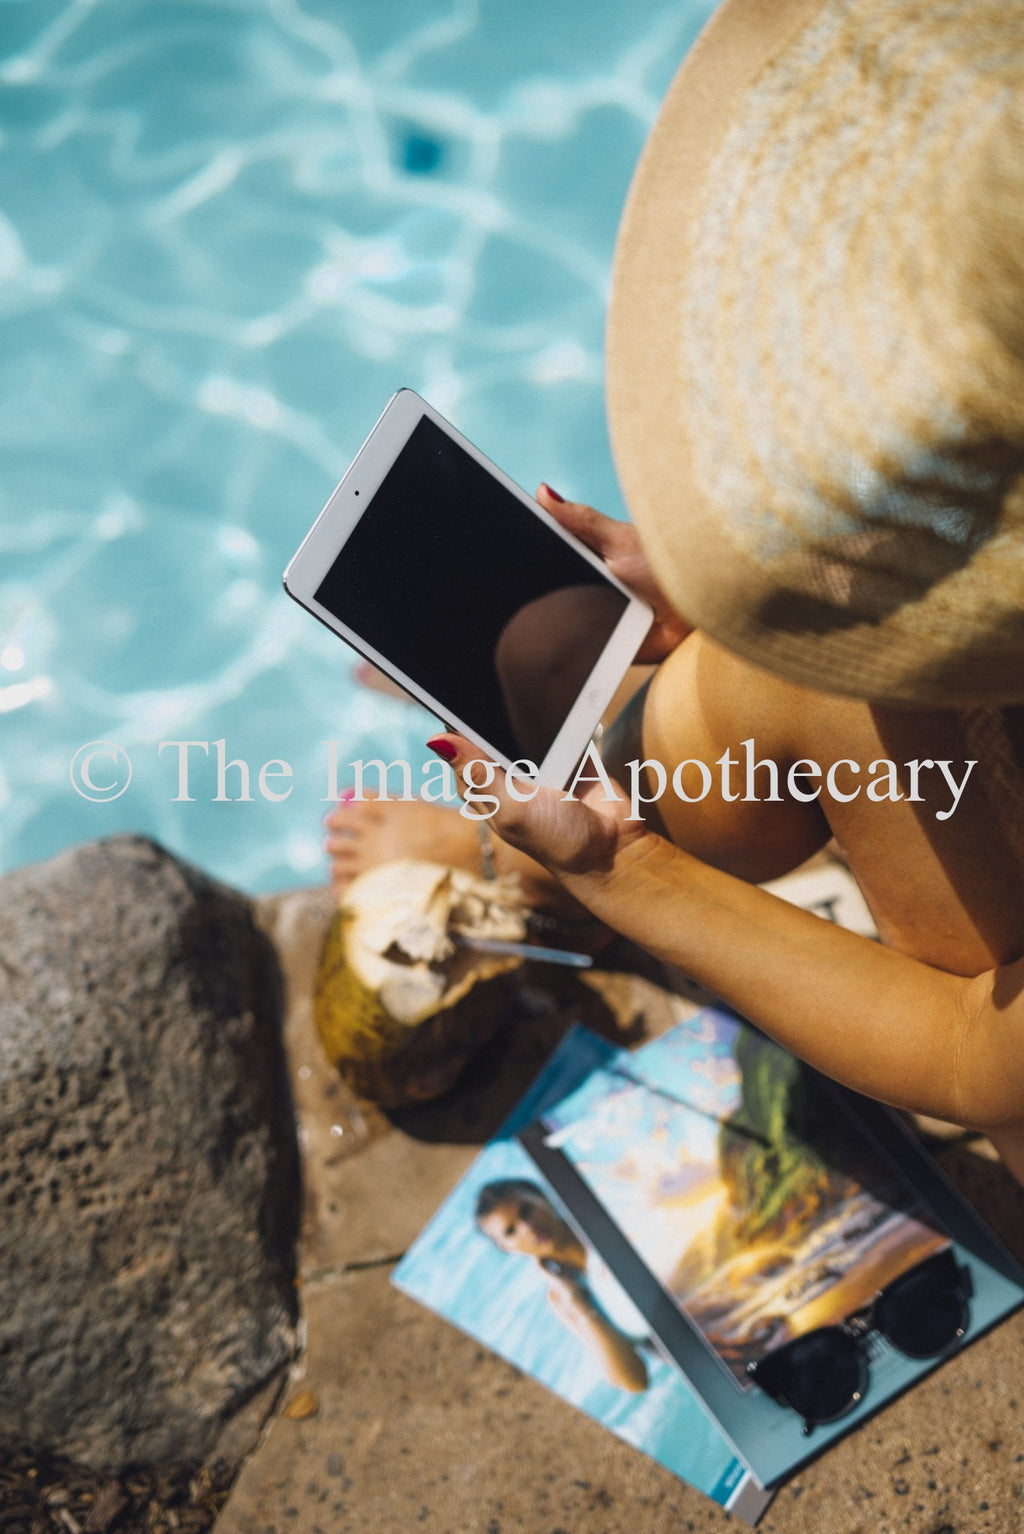 TheImageApothecary-6360 - Stock Photography by The Image Apothecary